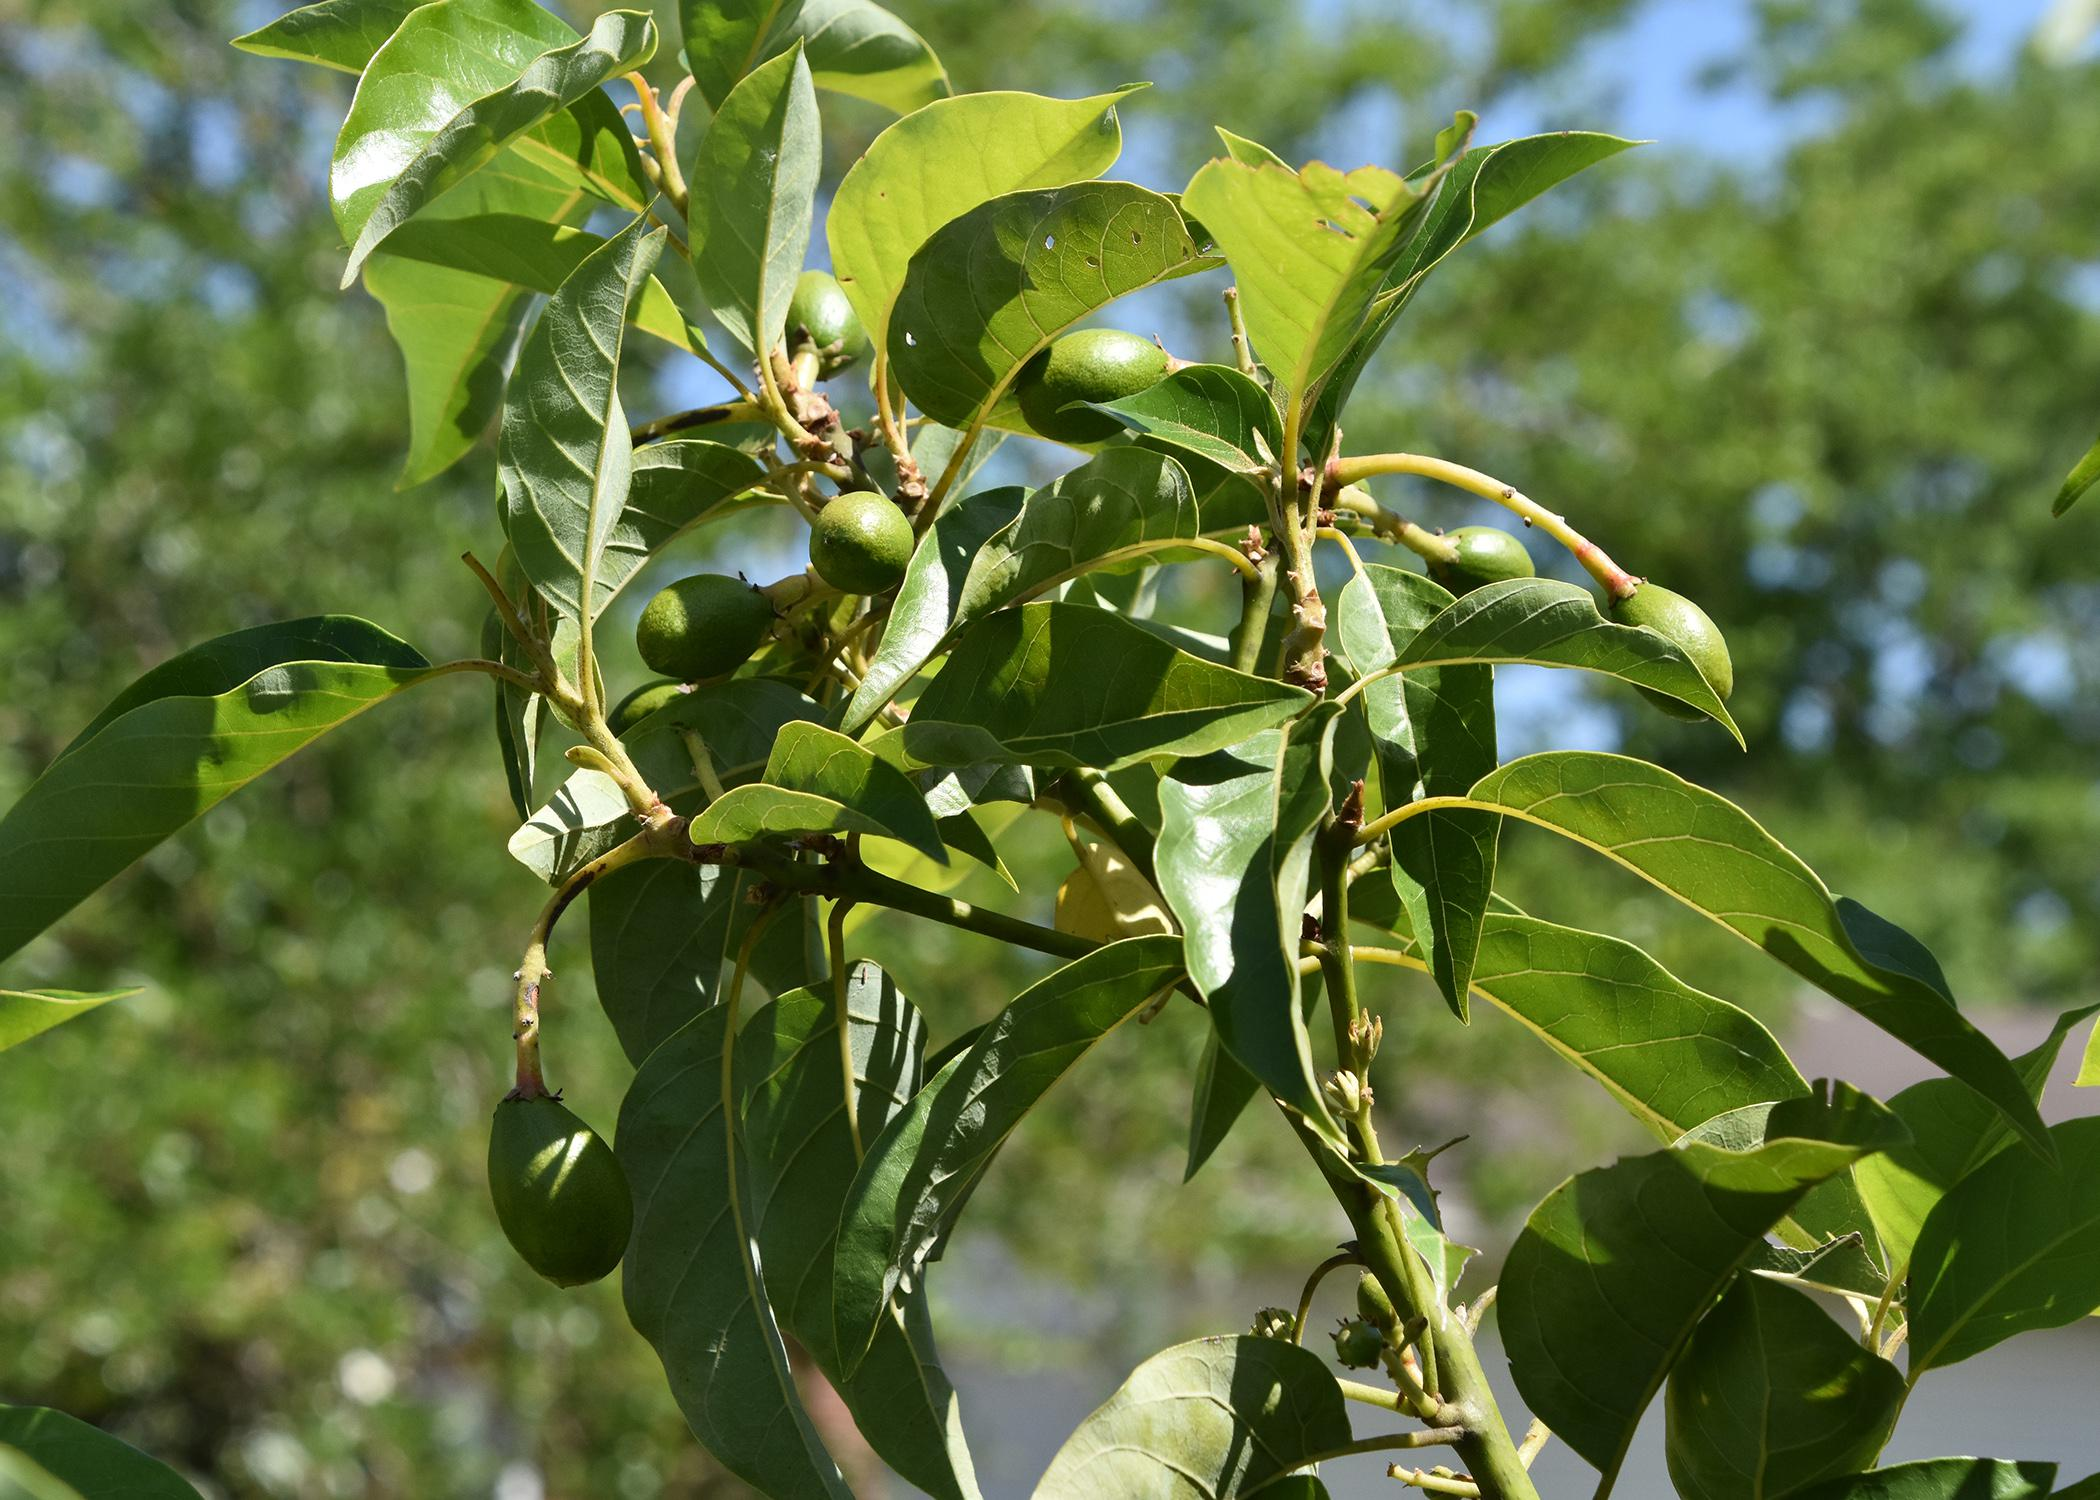 A small branch with green leaves has several small, green avacados growing from it.